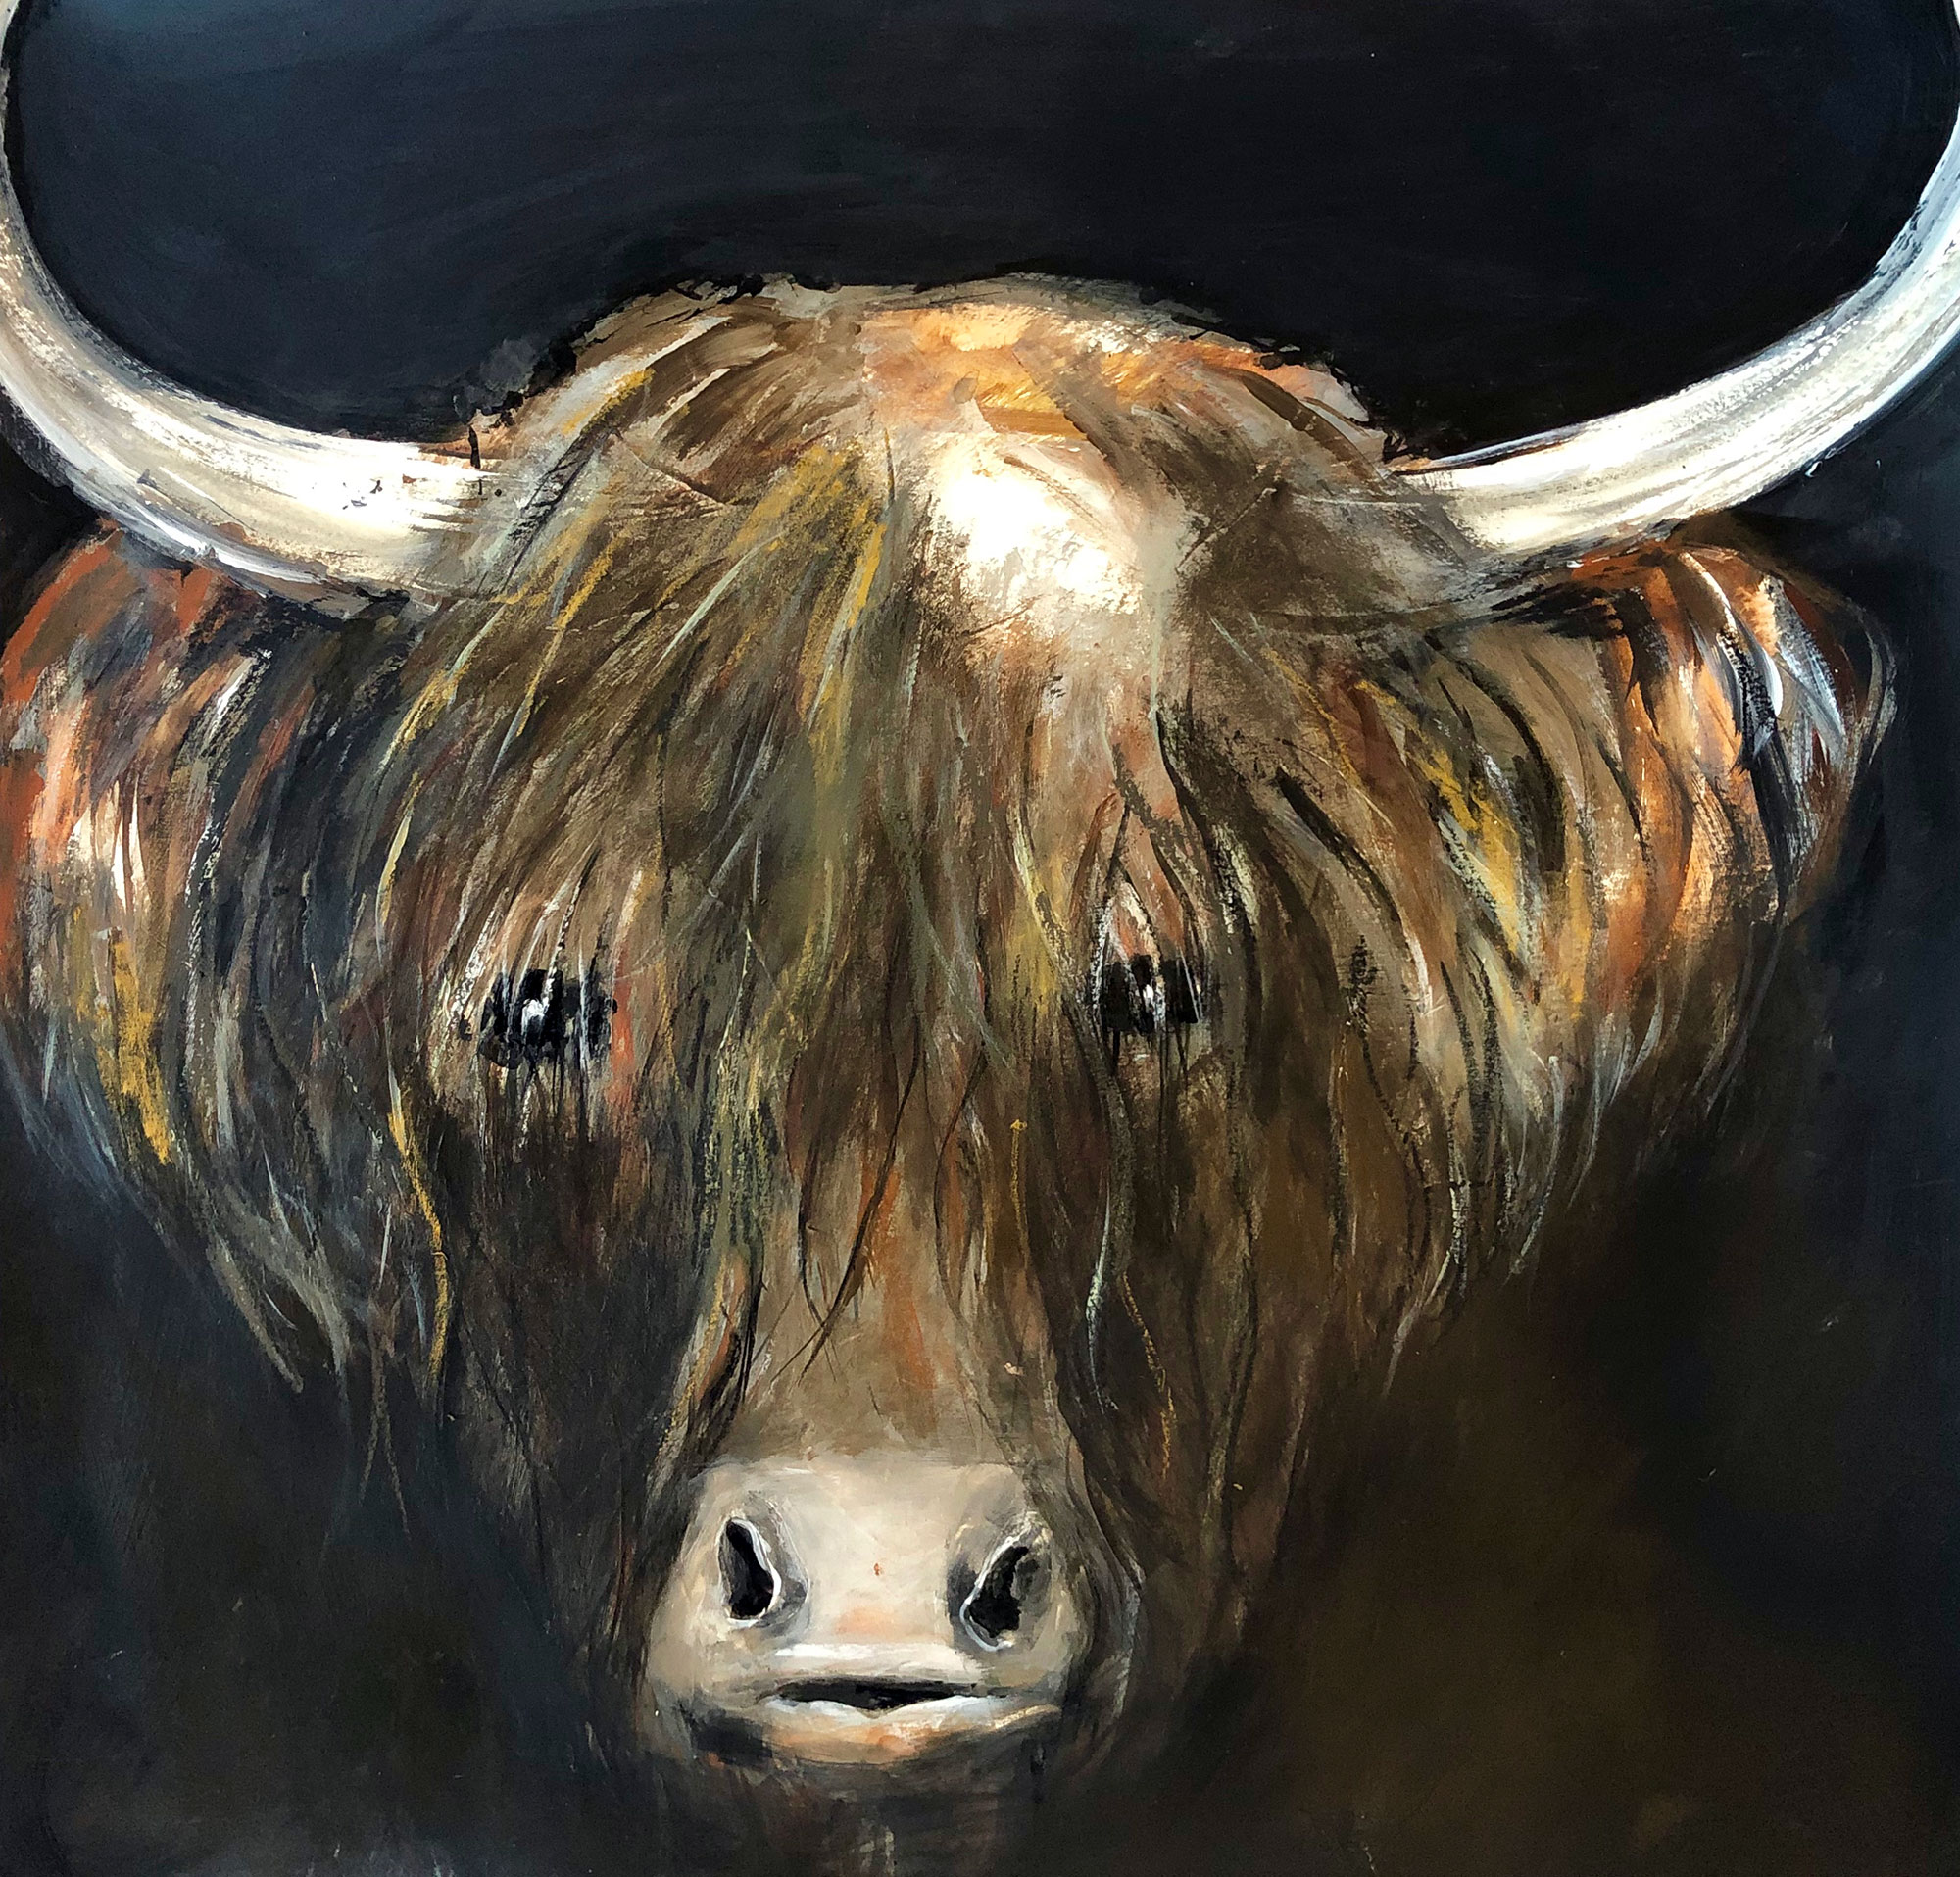 Mac-the-highland-cow